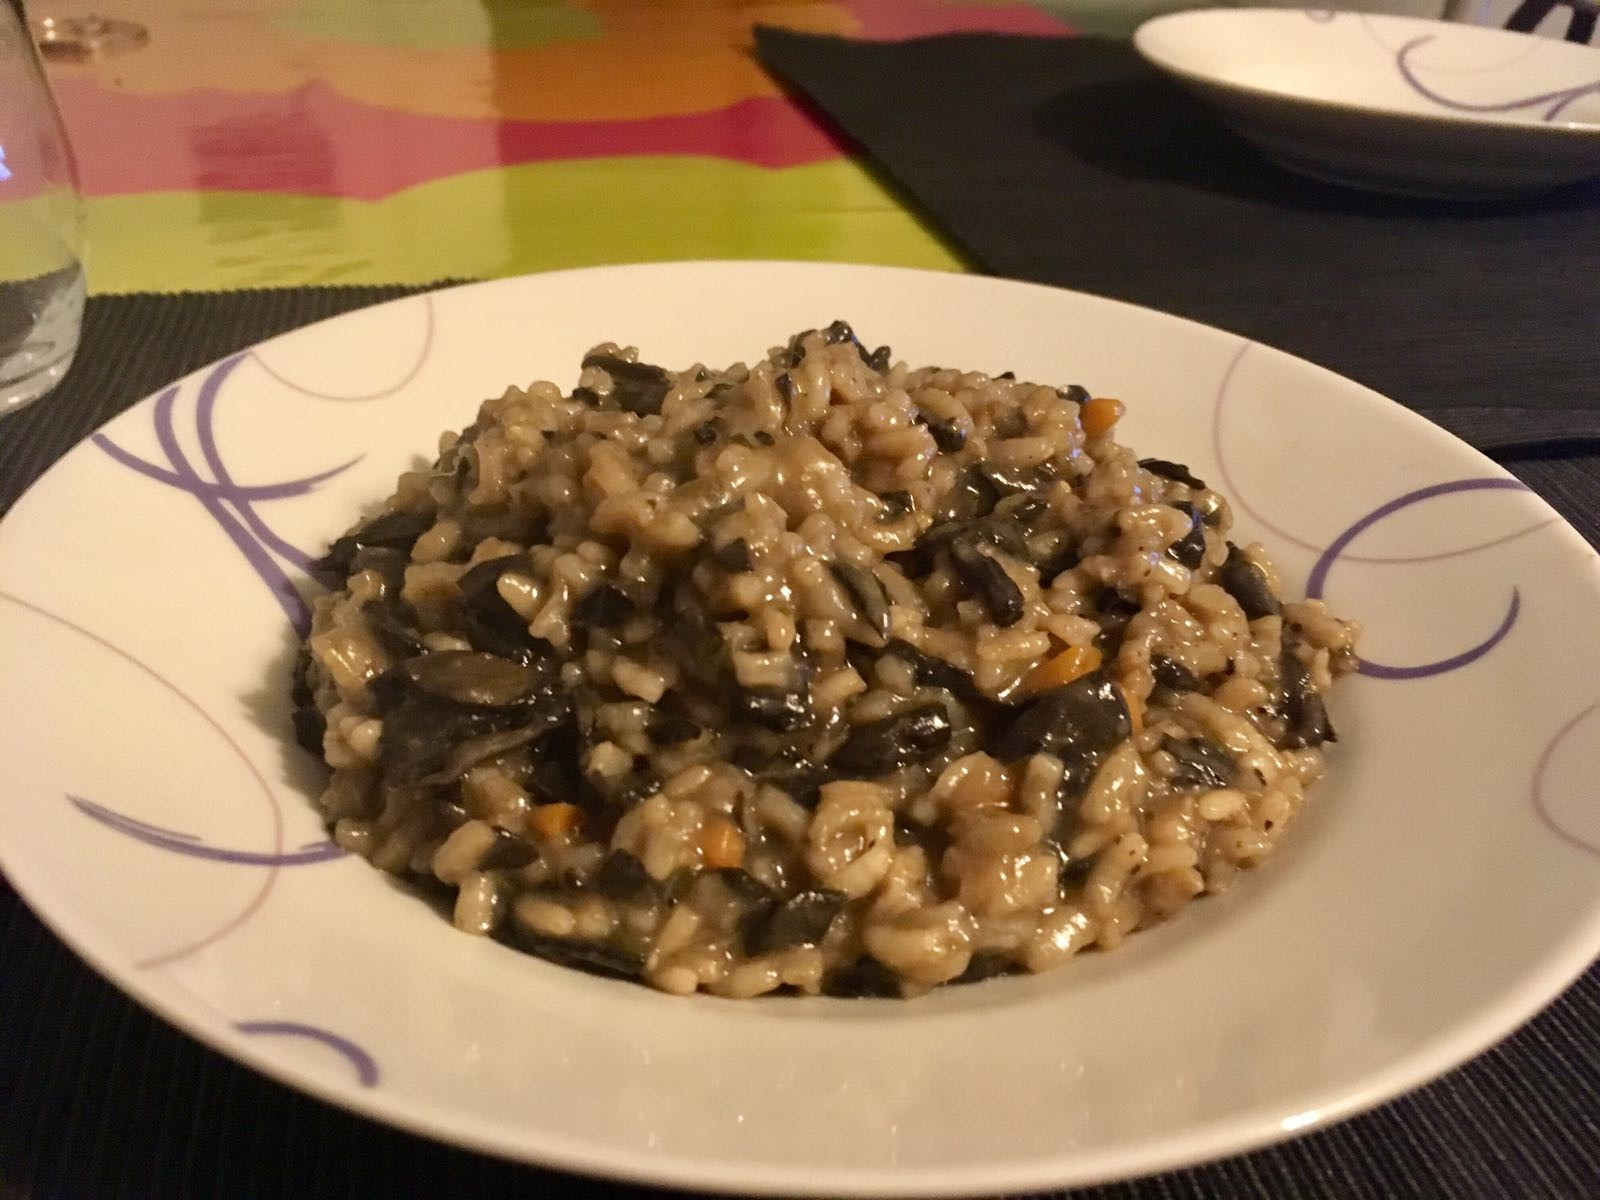 RISOTTO CON CAROTE, TROMBETTE DEI MORTI E OLIO DI RISO CRUDIGNO - RISOTTO WITH HORNS OF PLENTY MUSHROOMS, CARROTS AND CRUDIGNO RICE OIL